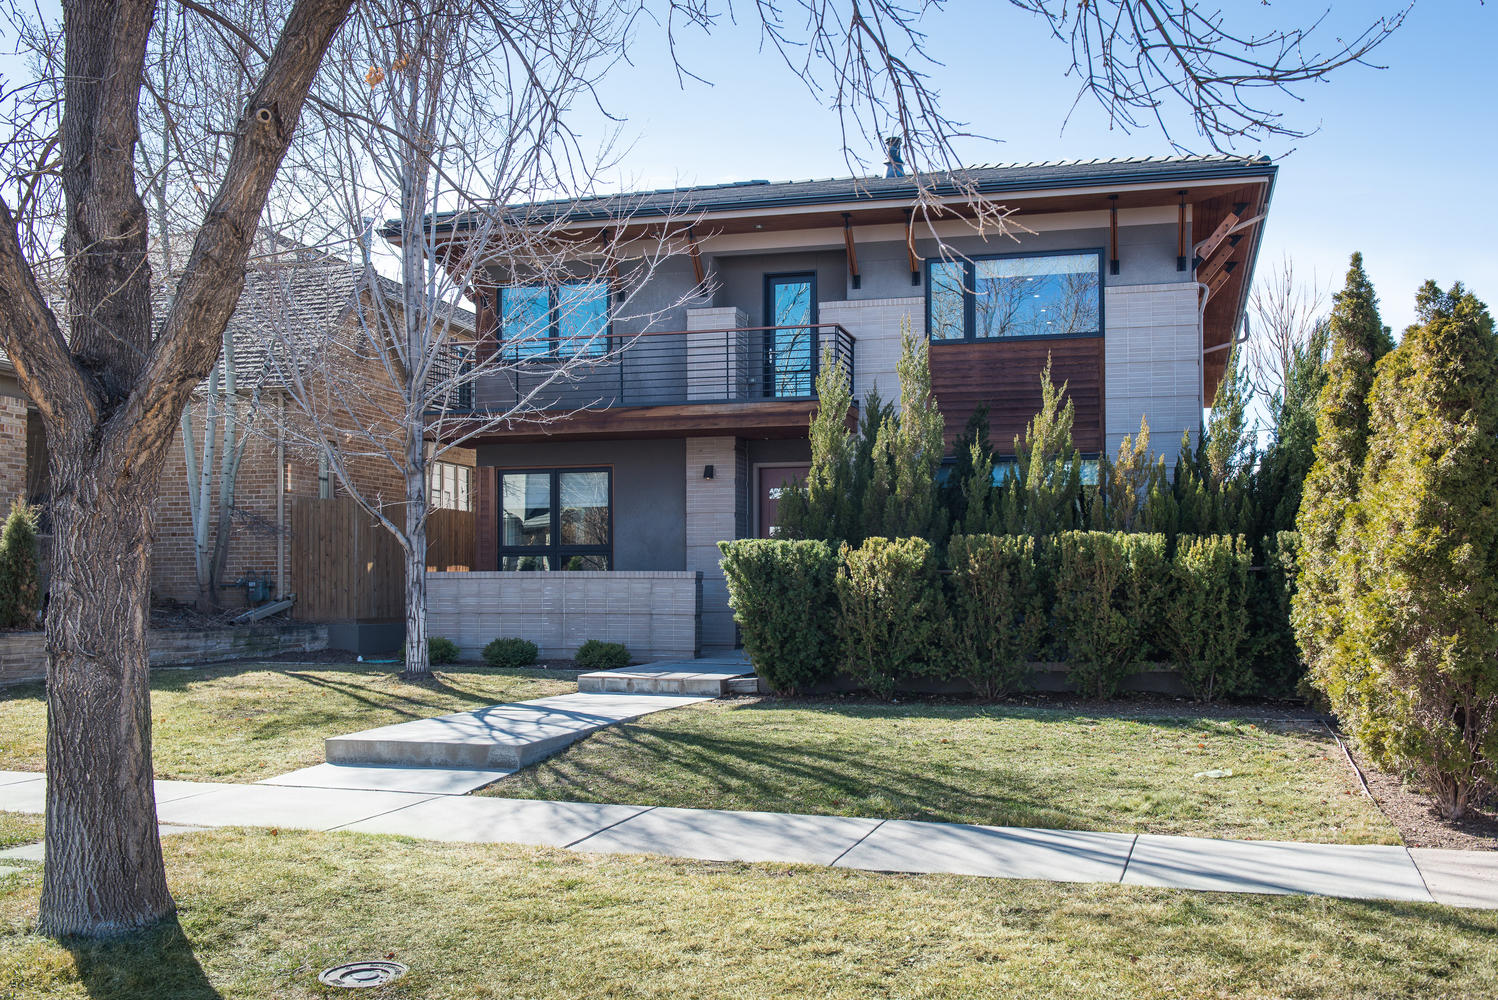 Single Family Home for Sale at Sophisticated single family home 559 Madison Street Denver, Colorado, 80206 United States